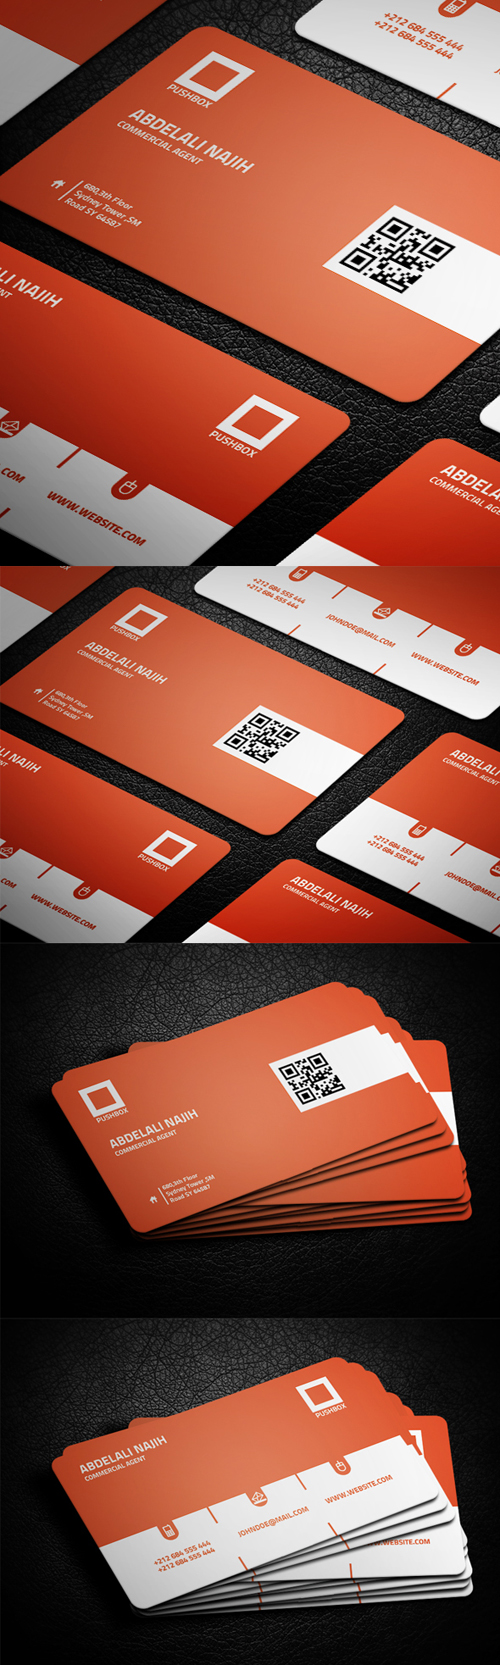 business cards template design - 10